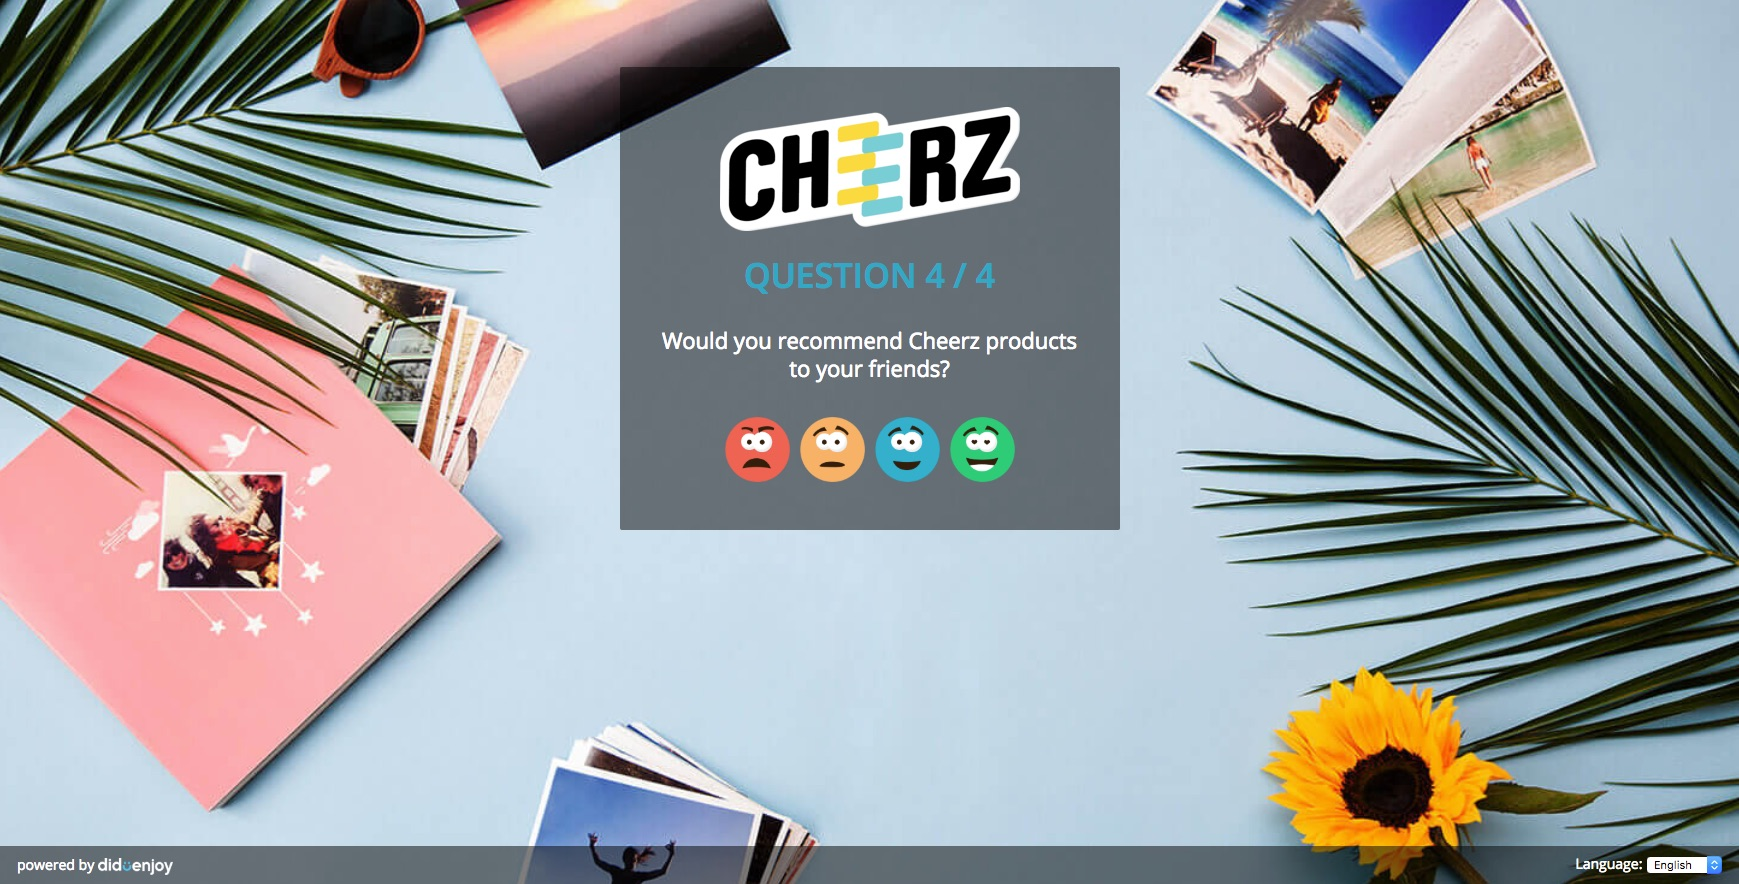 questionnaire satisfaction diduenjoy cheerz